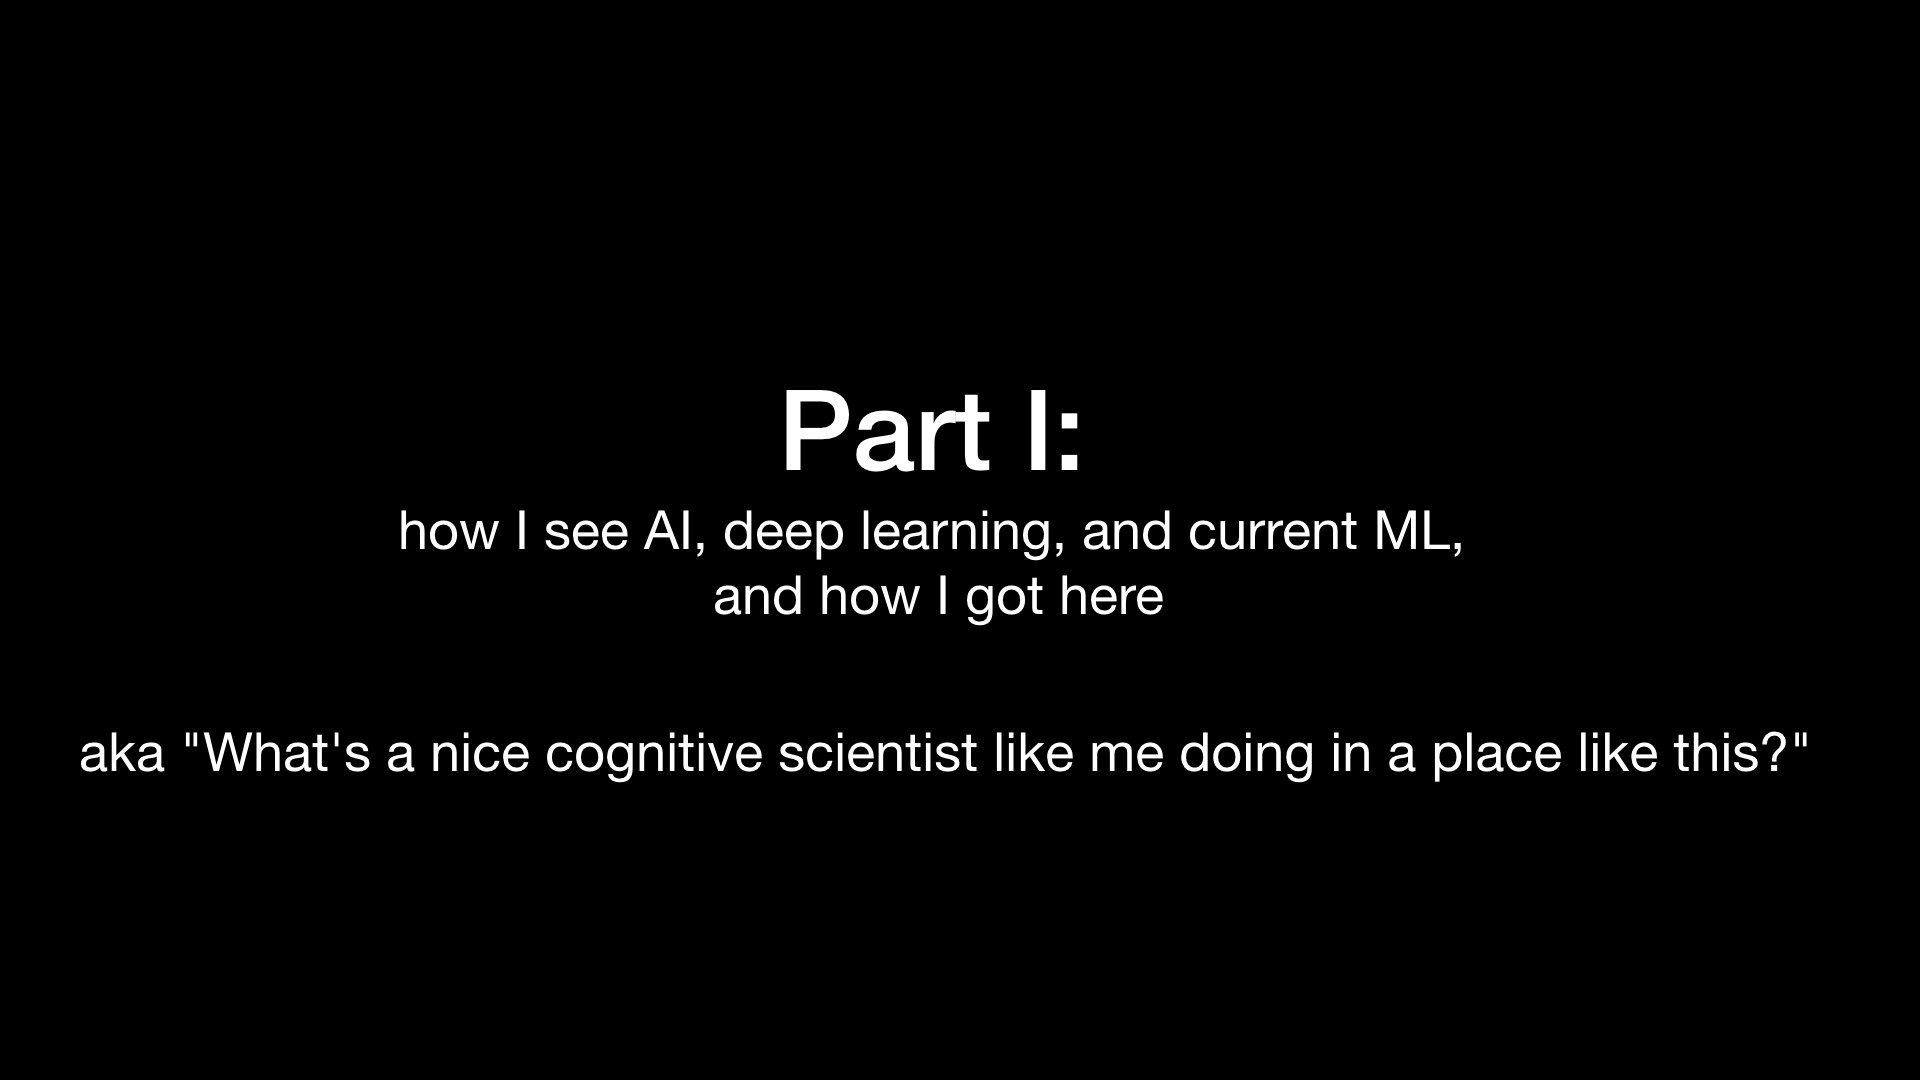 Part I: how I see AI, deep learning, and current ML, and how I got here